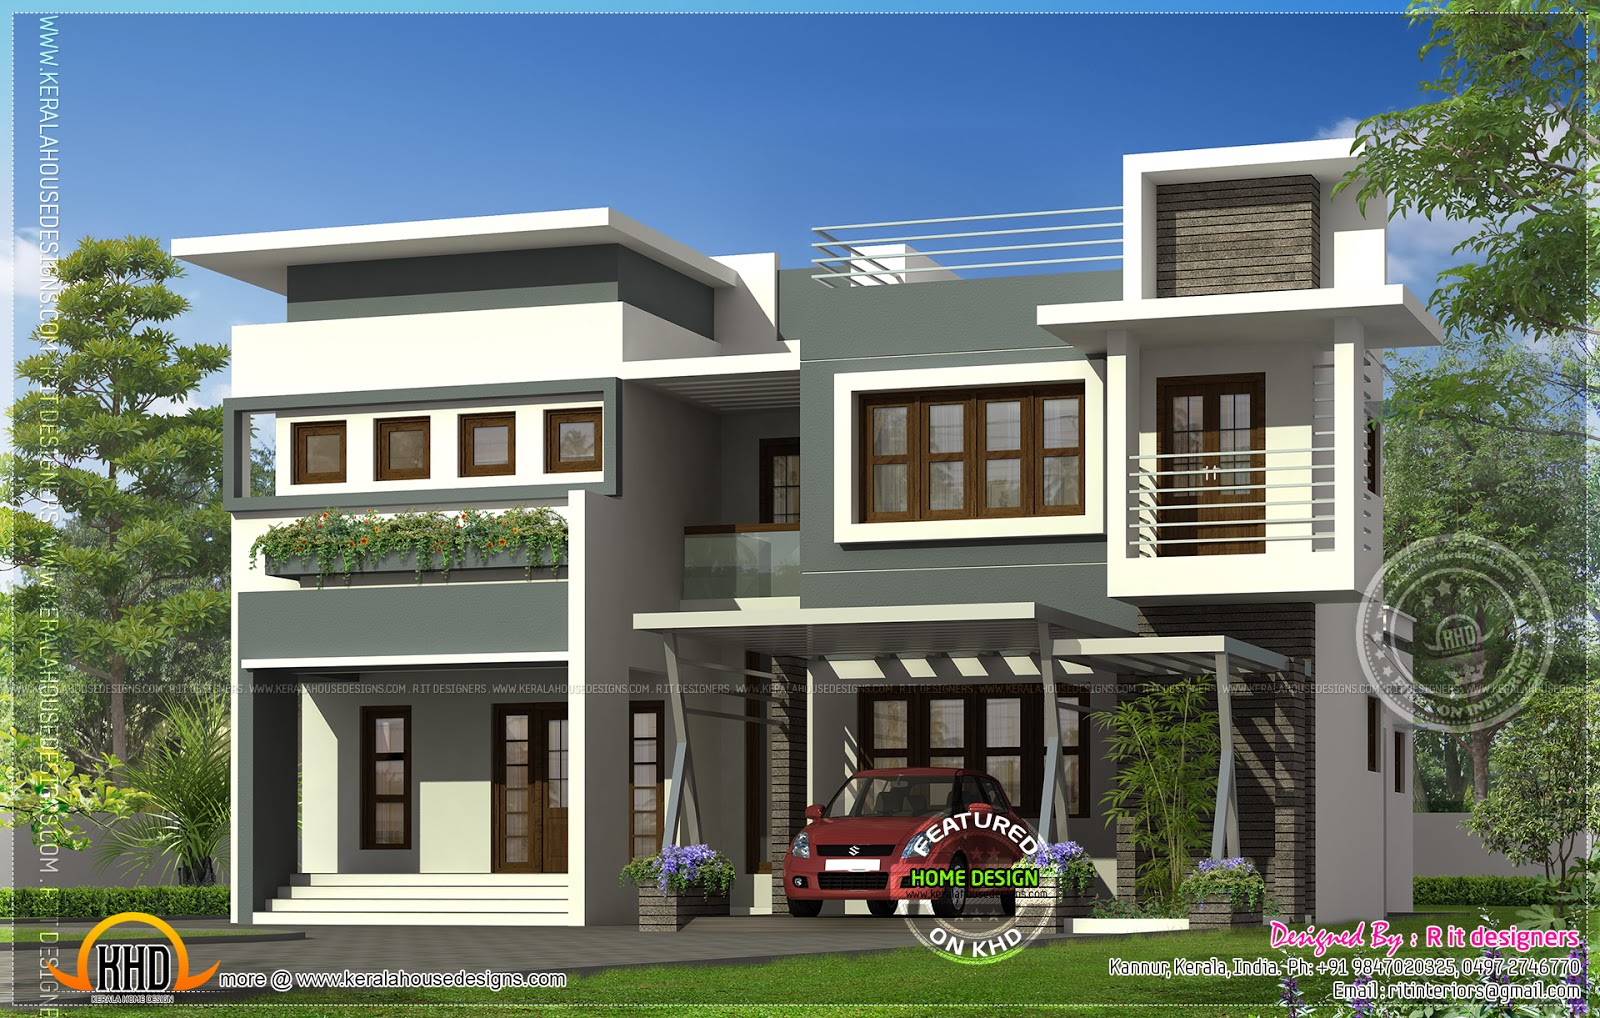 Modern contemporary residence design kerala home design for Kerala modern house designs